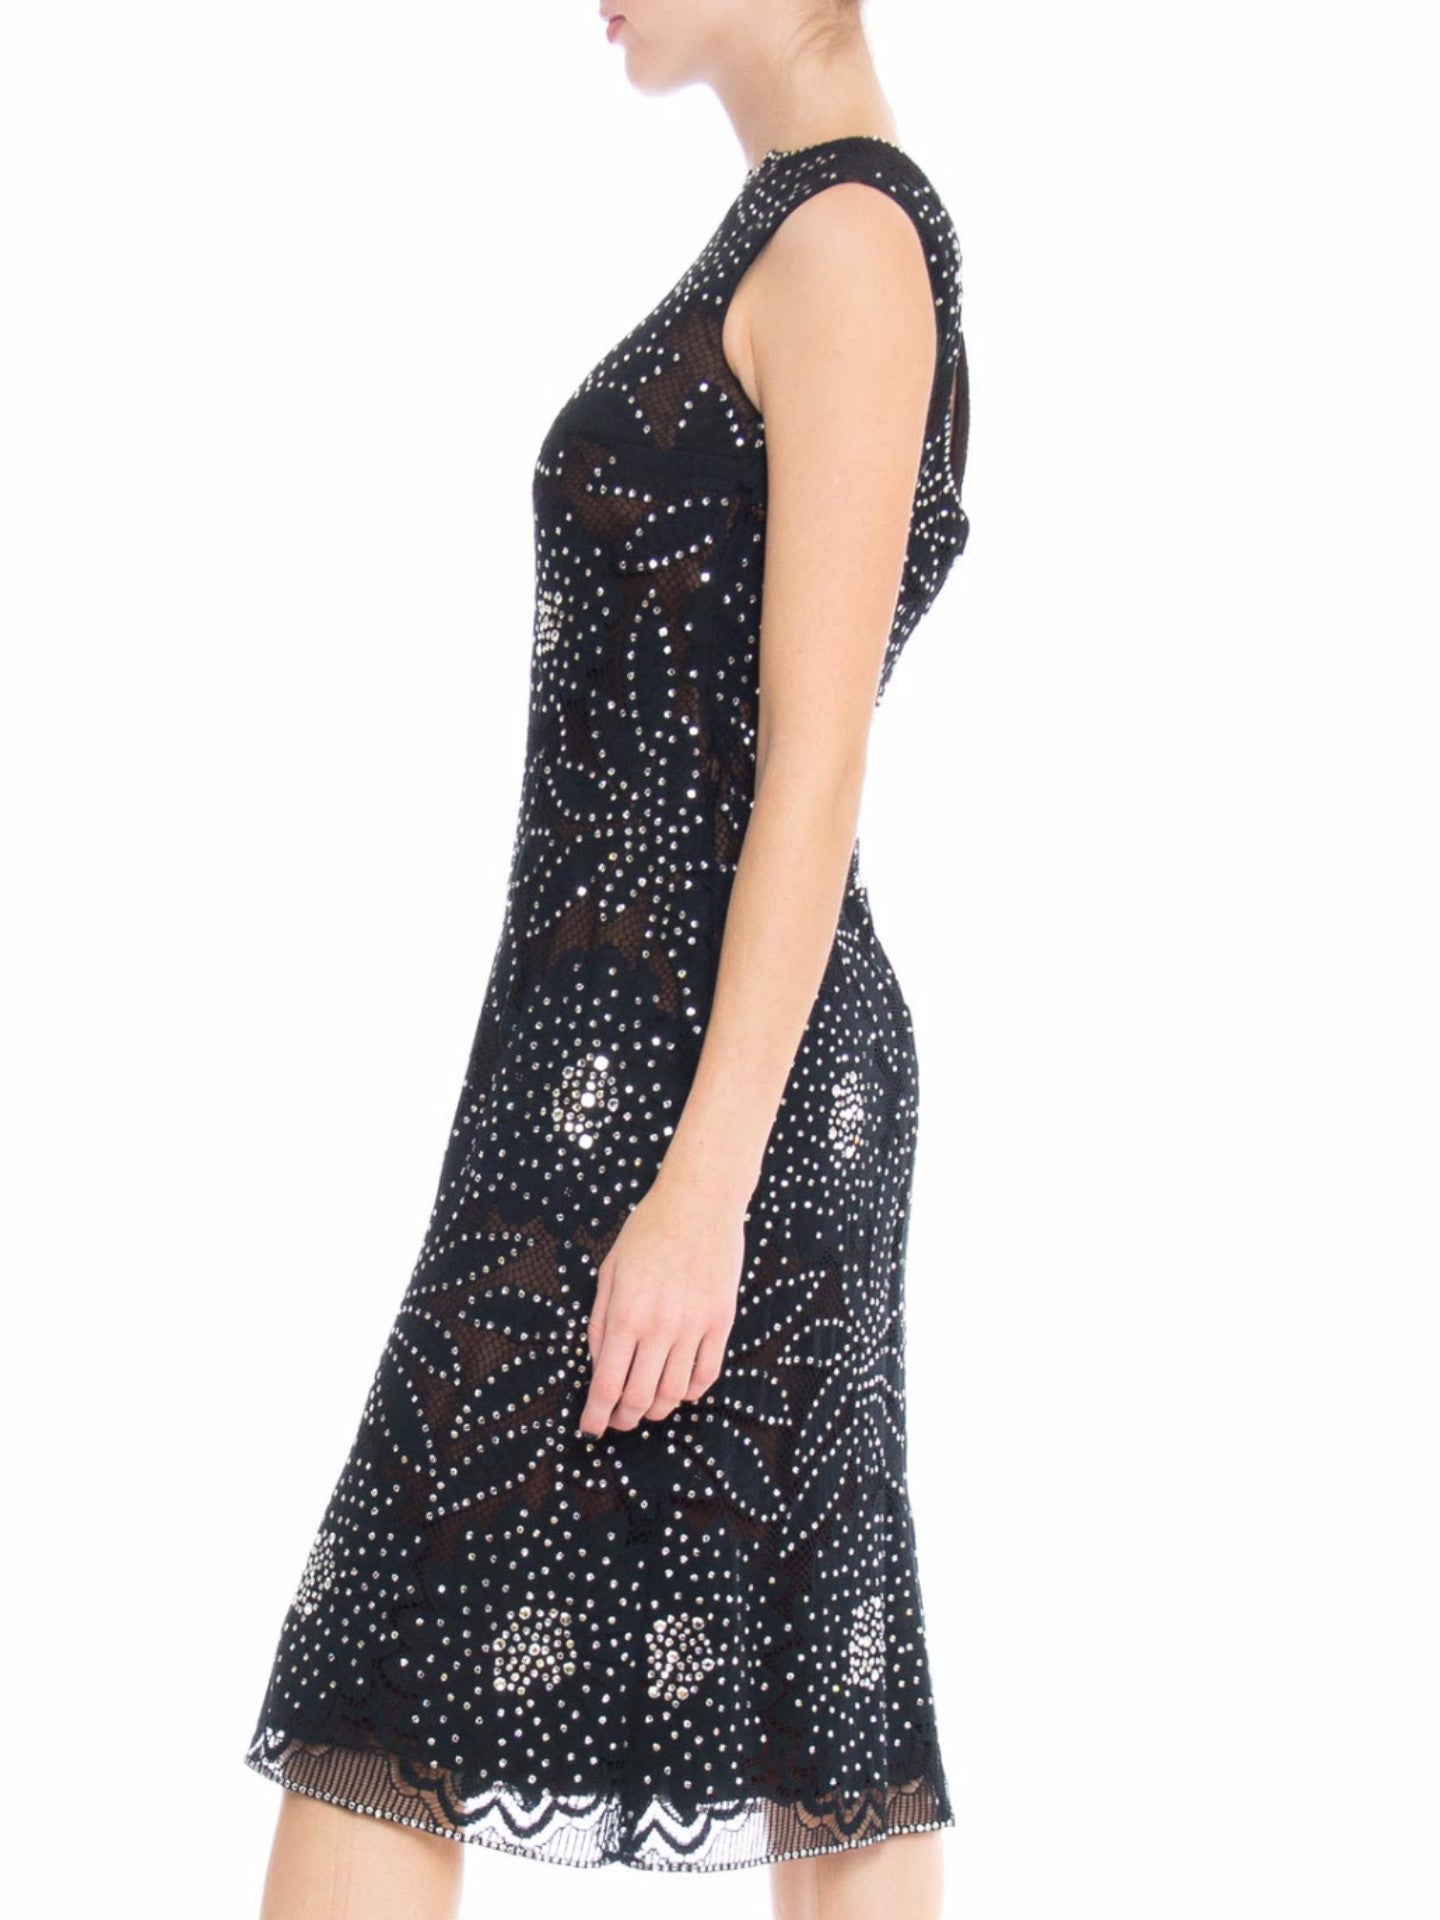 1960S Black Silk Chiffon Cocktail Dress Overlaid With Crystal Daisy Lace